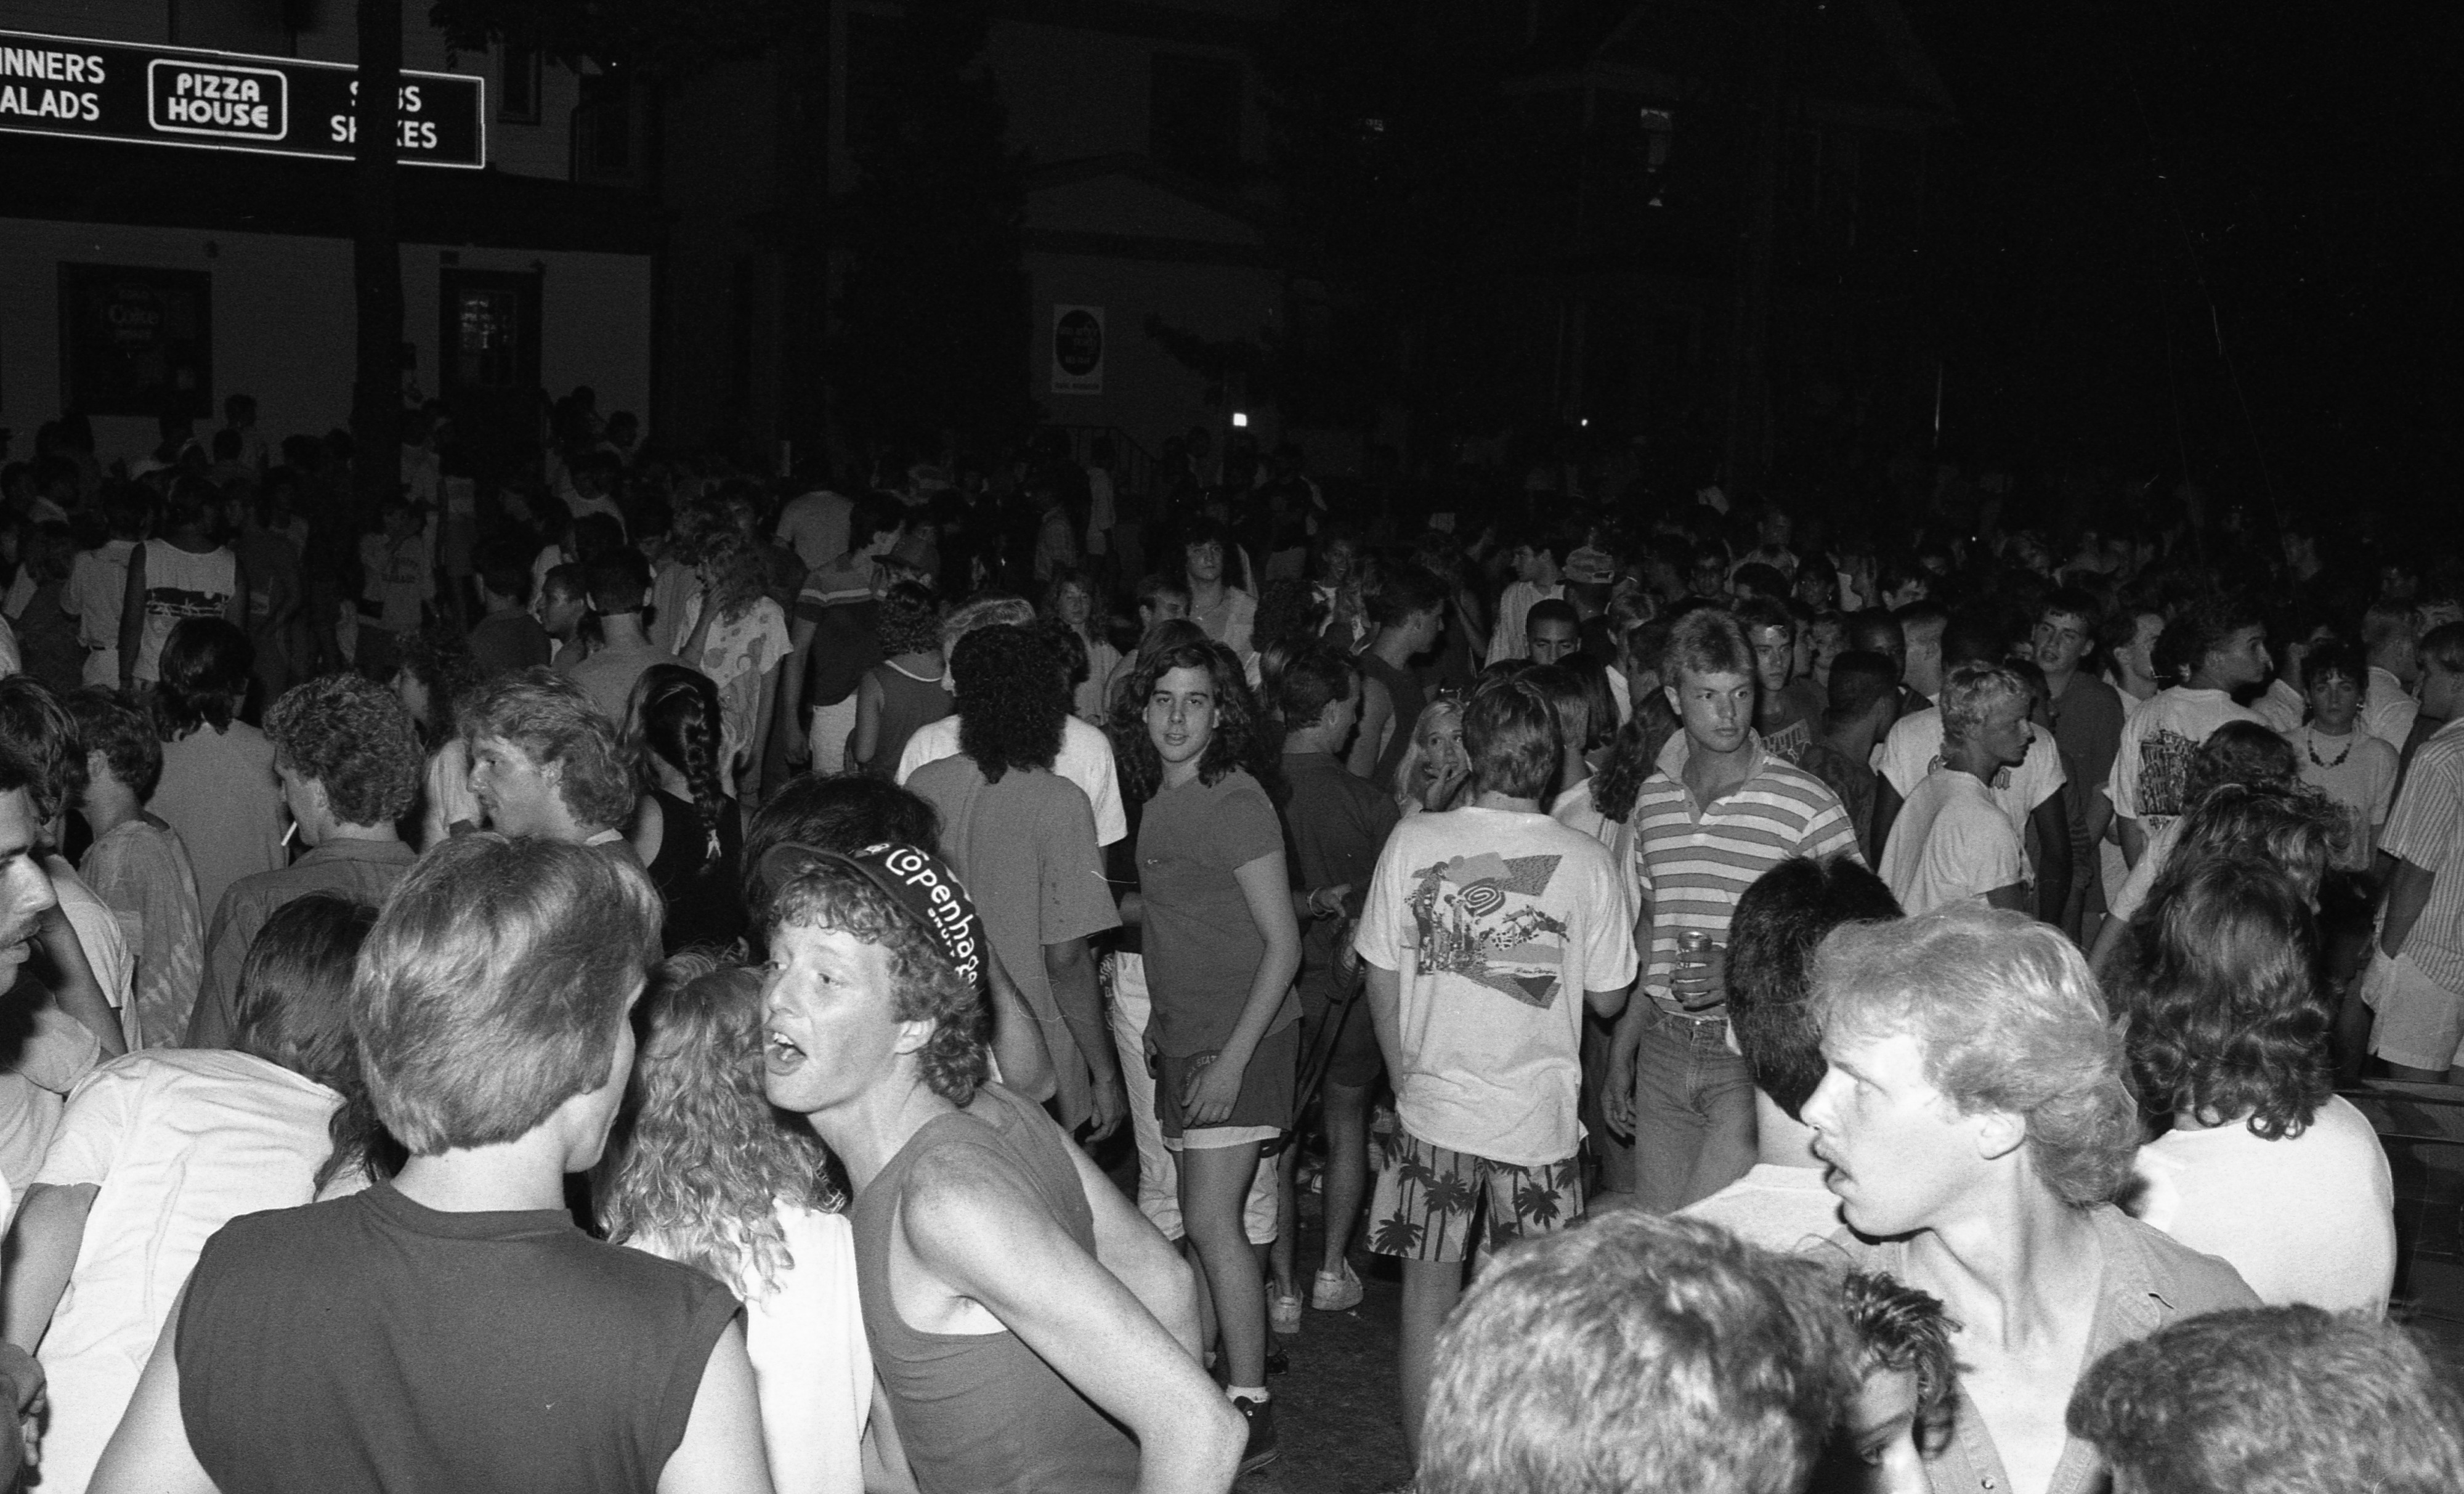 Ann Arbor Police Department Monitors Crowd on South University After Art Fair, July 1987 image